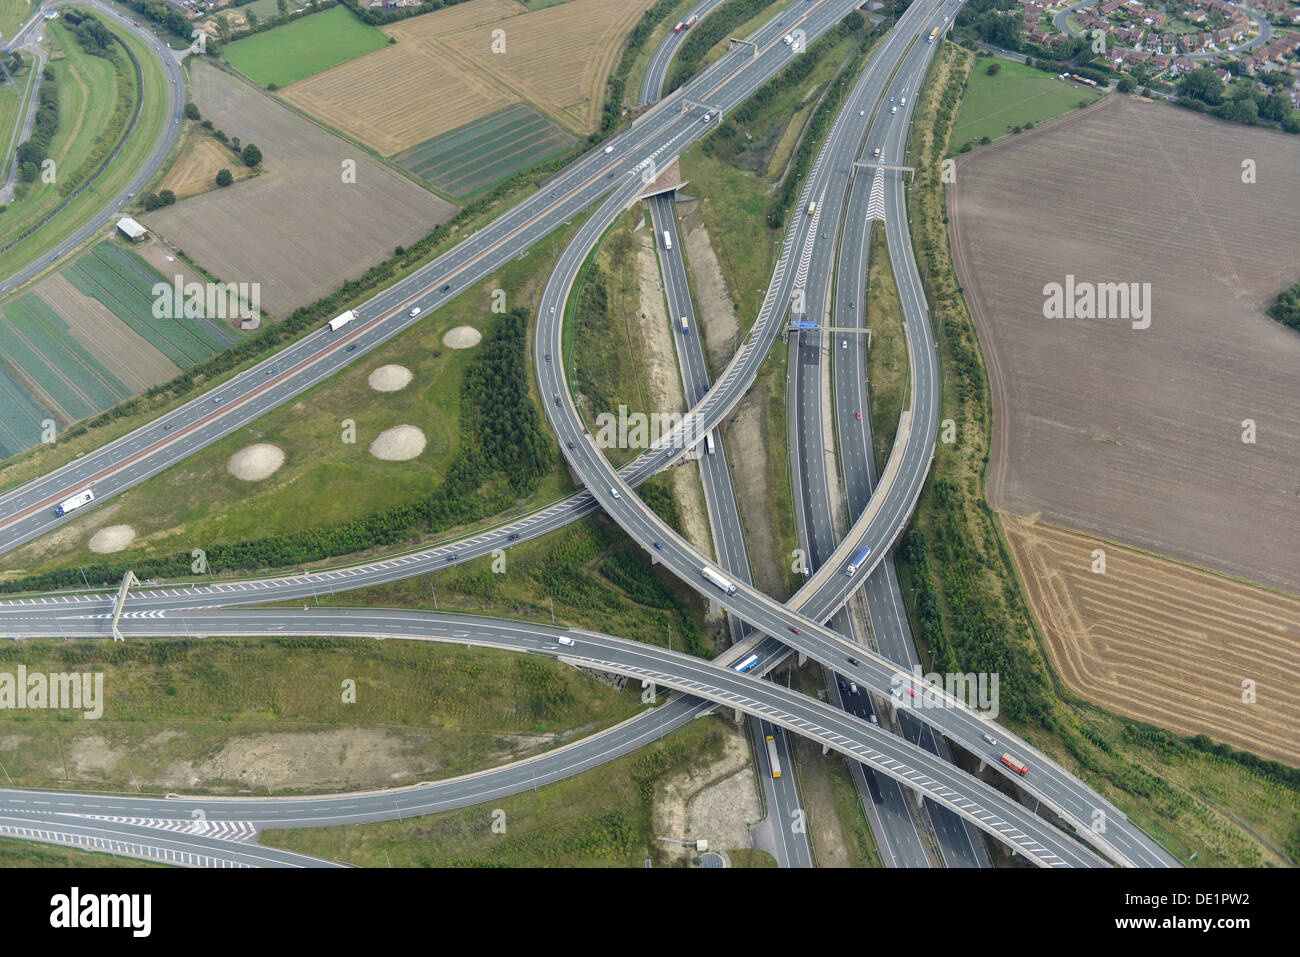 Aerial photograph of Junction 32A M62 A1(M) - Stock Image